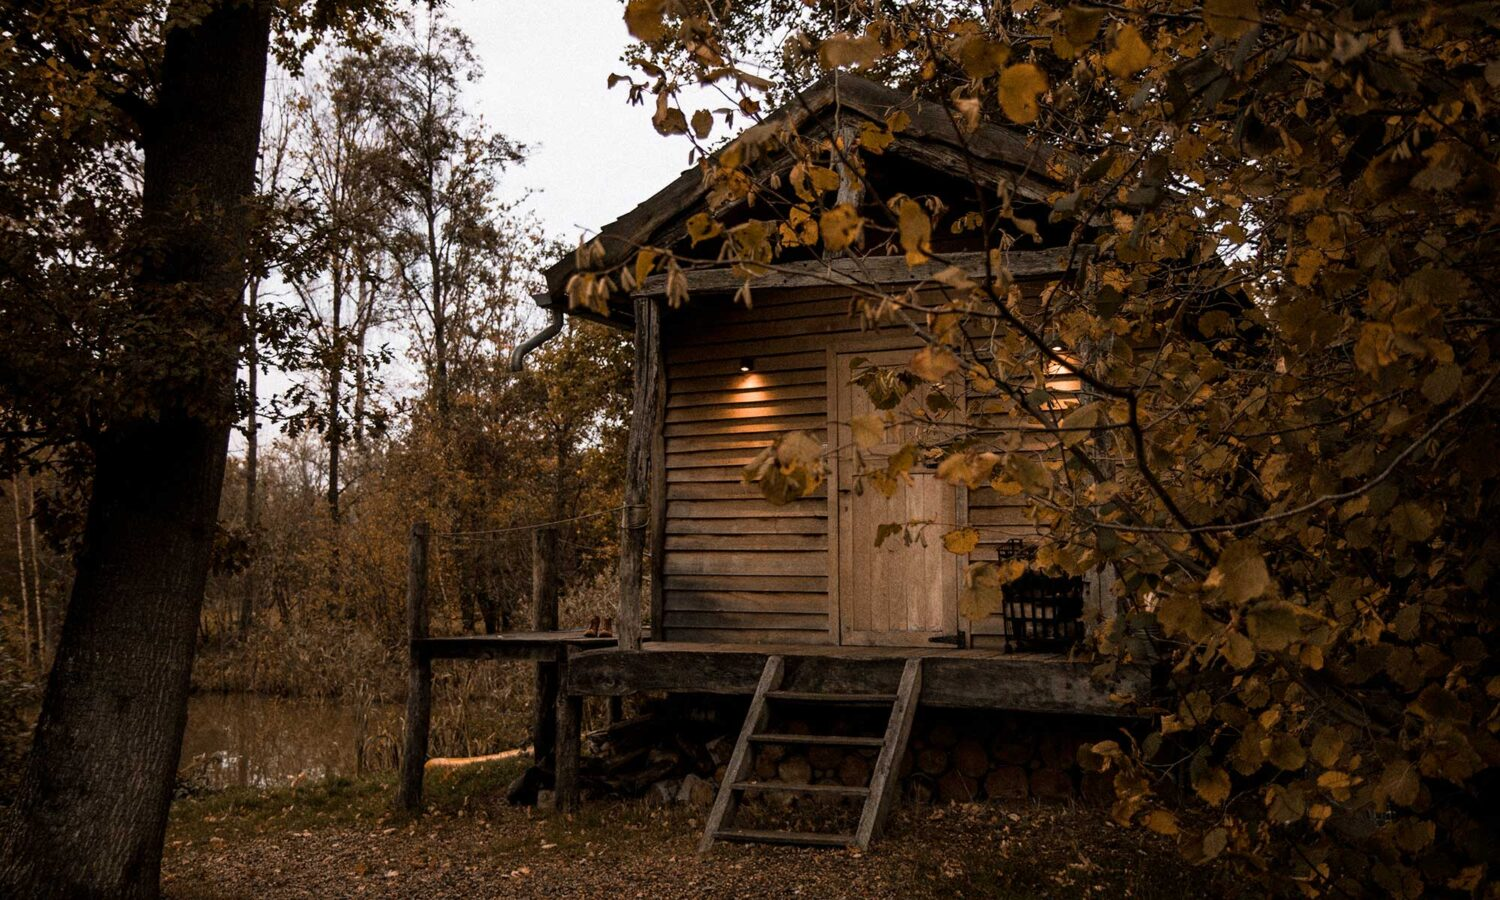 Rustic feels when approaching the tiny house